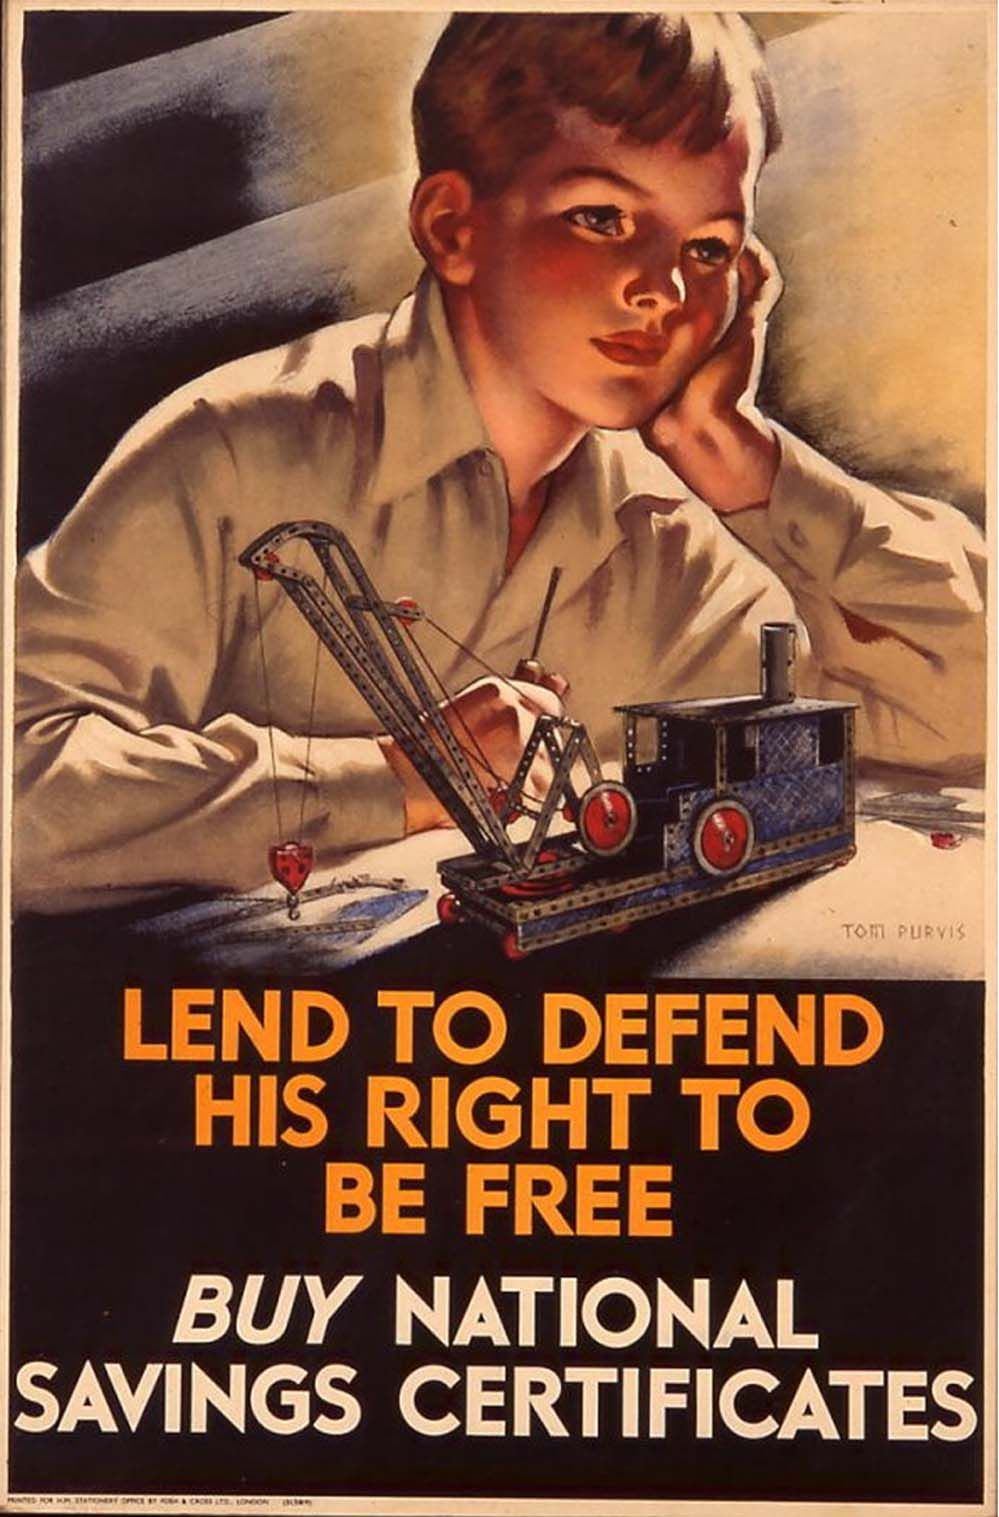 Lend to defend his right to be free wwii national savings lend to defend his right to be free wwii national savings certificate poster 1betcityfo Choice Image